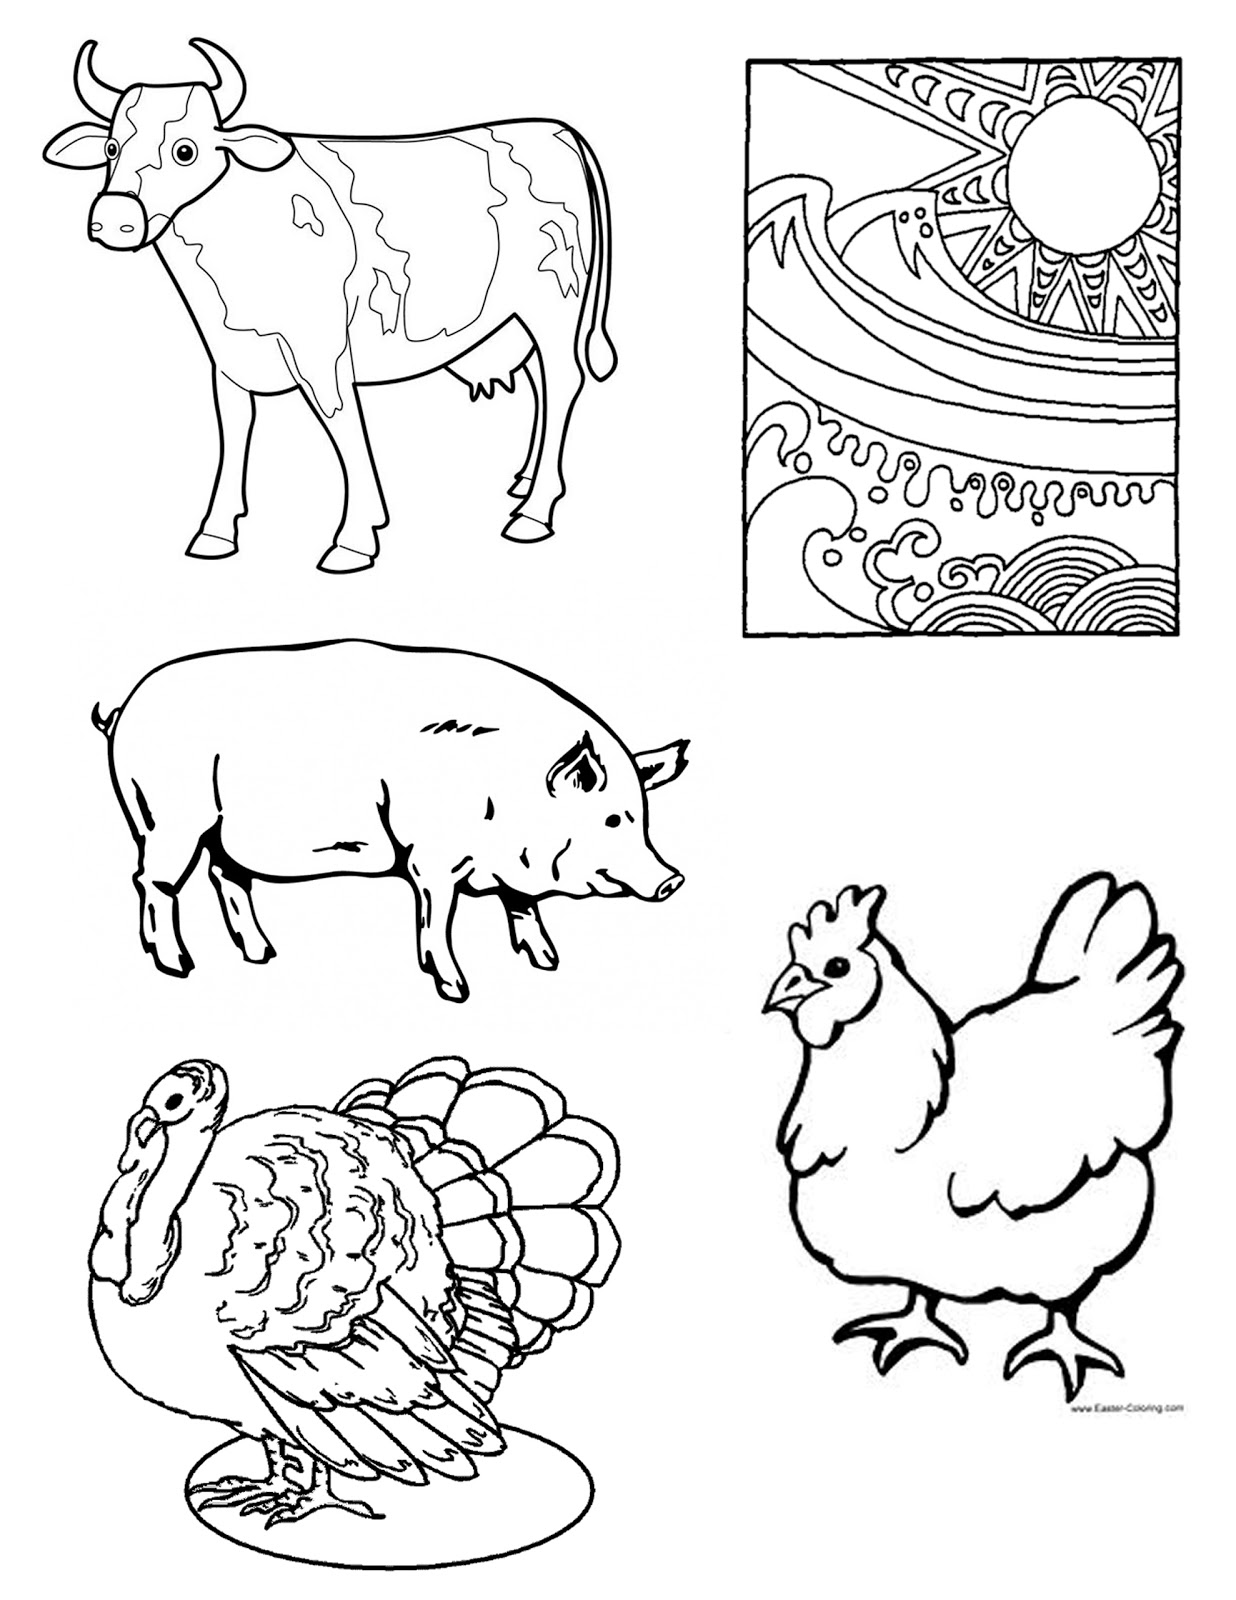 Meat Food Group Coloring Pages | Coloring Pages